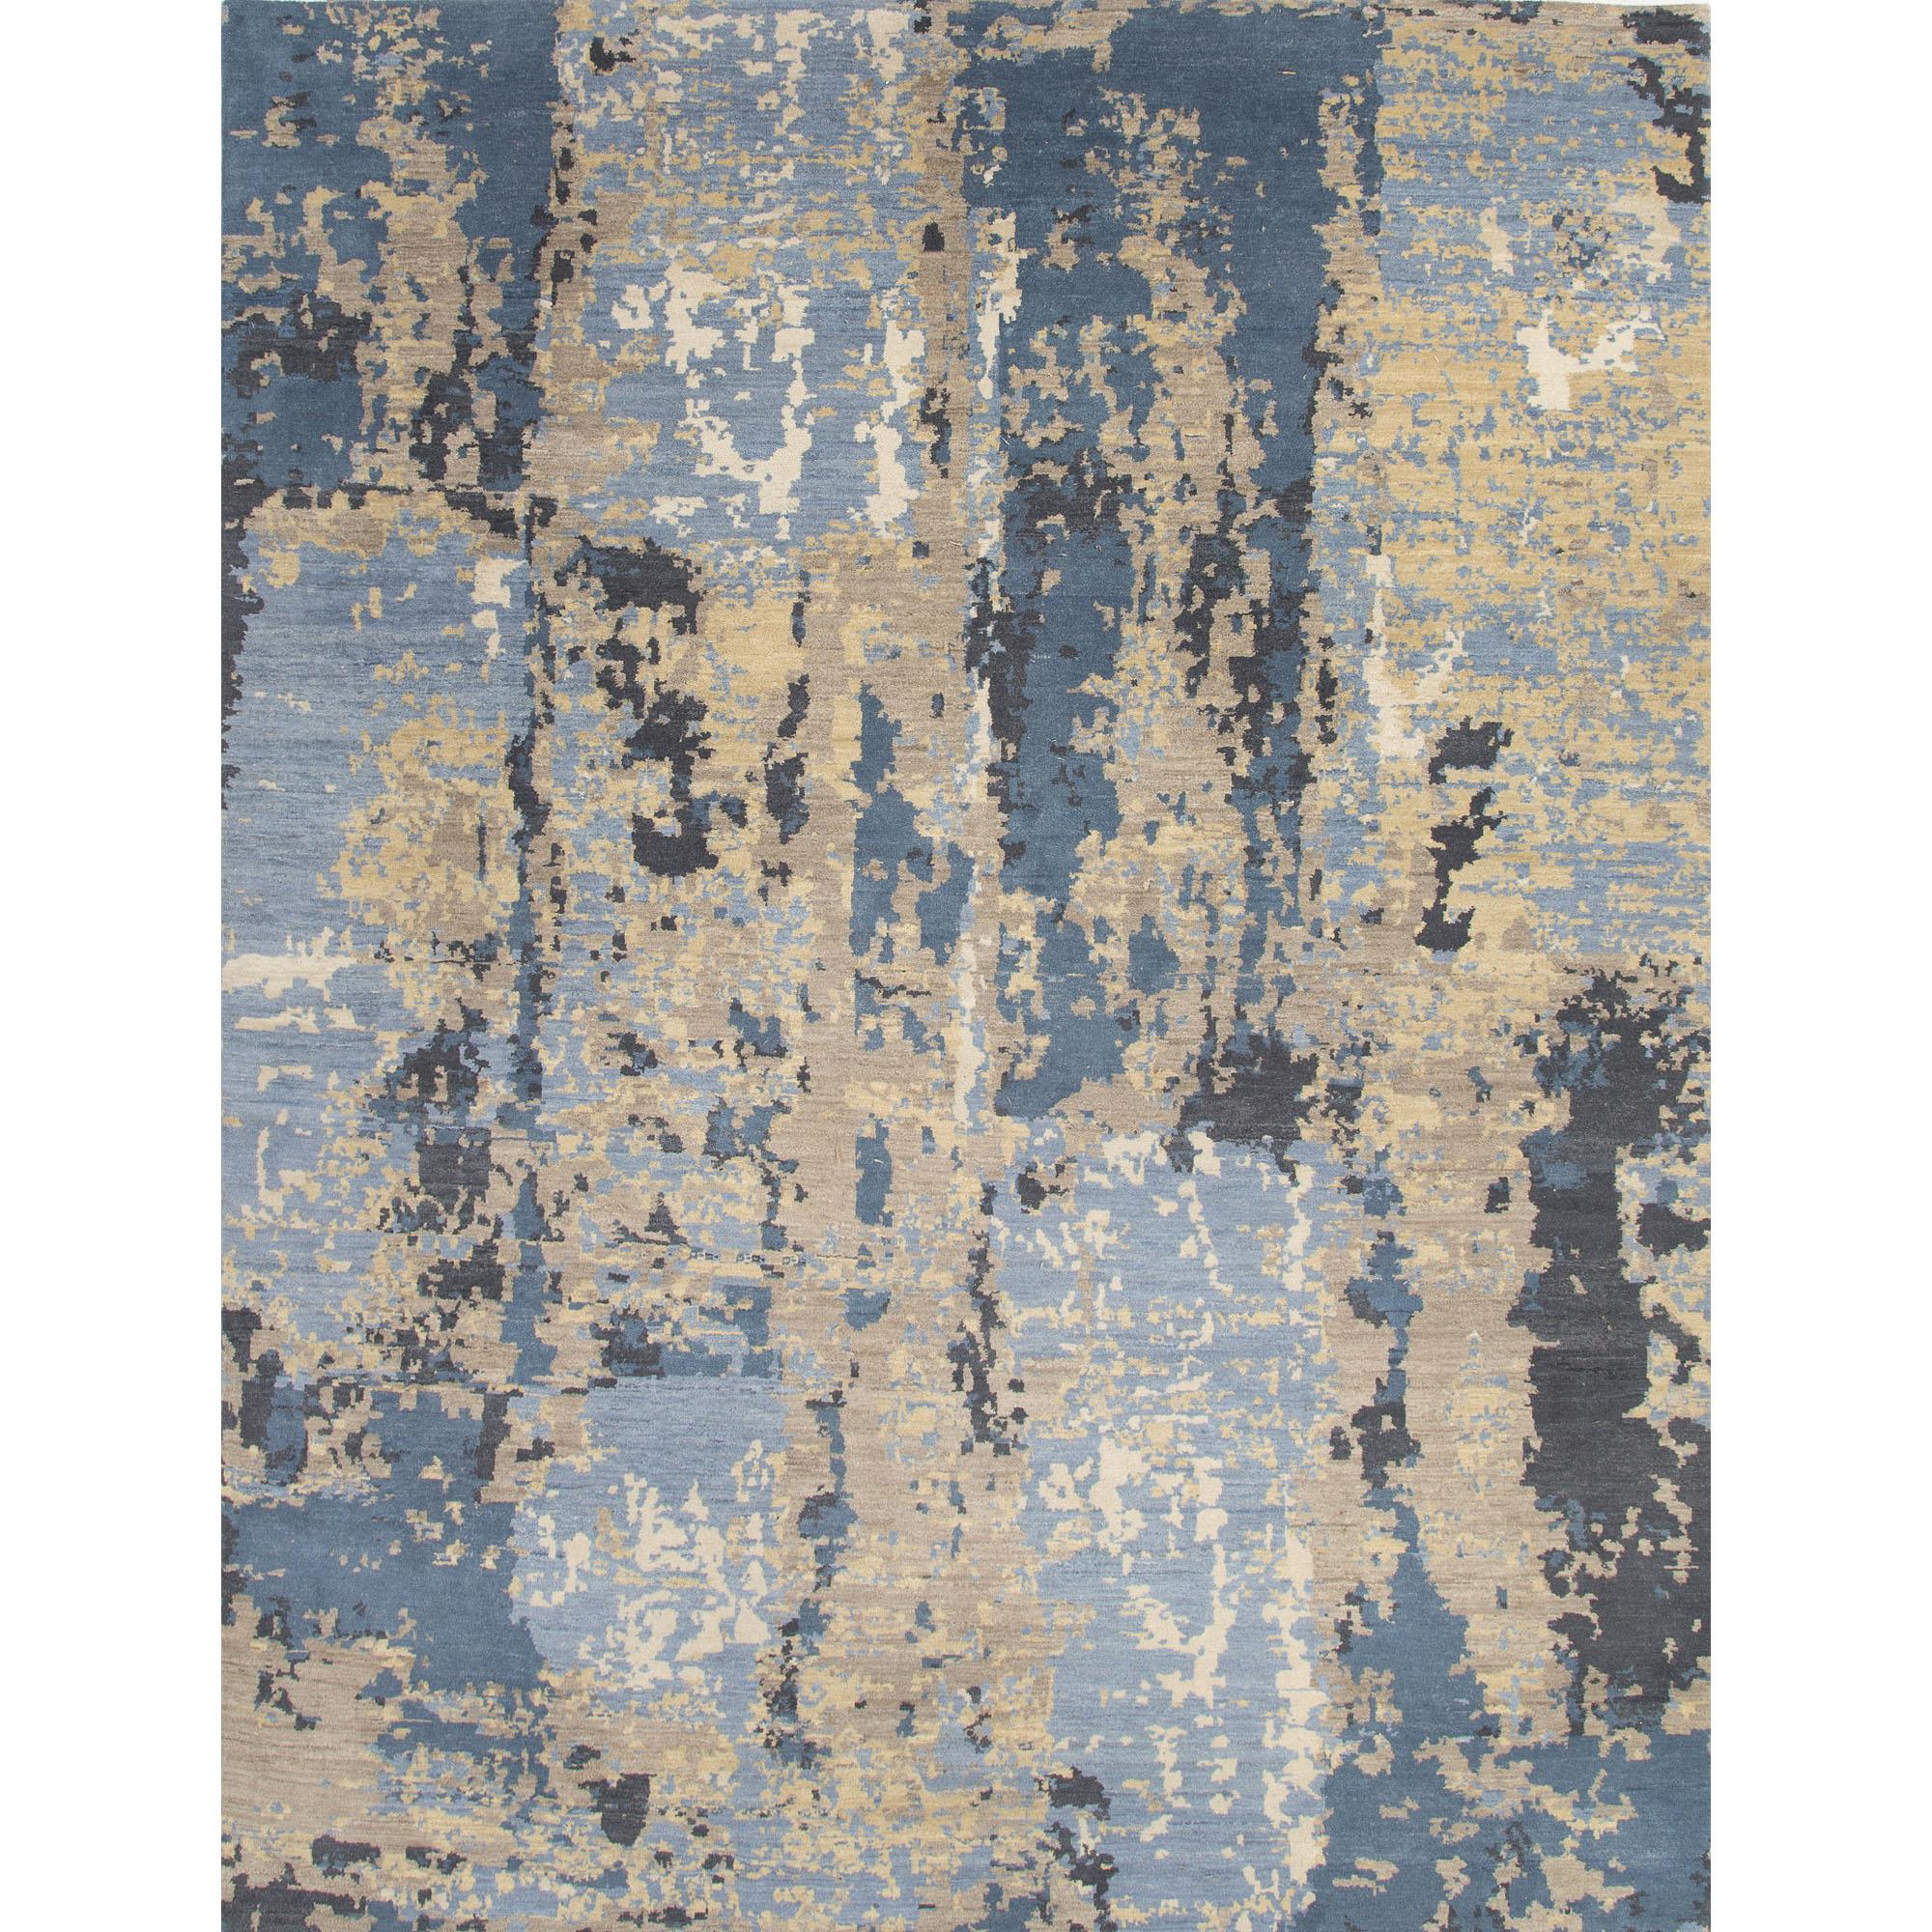 Connextion By Jenny Jones-global 5 x 8 Rug by JAIPUR Living at Sprintz Furniture